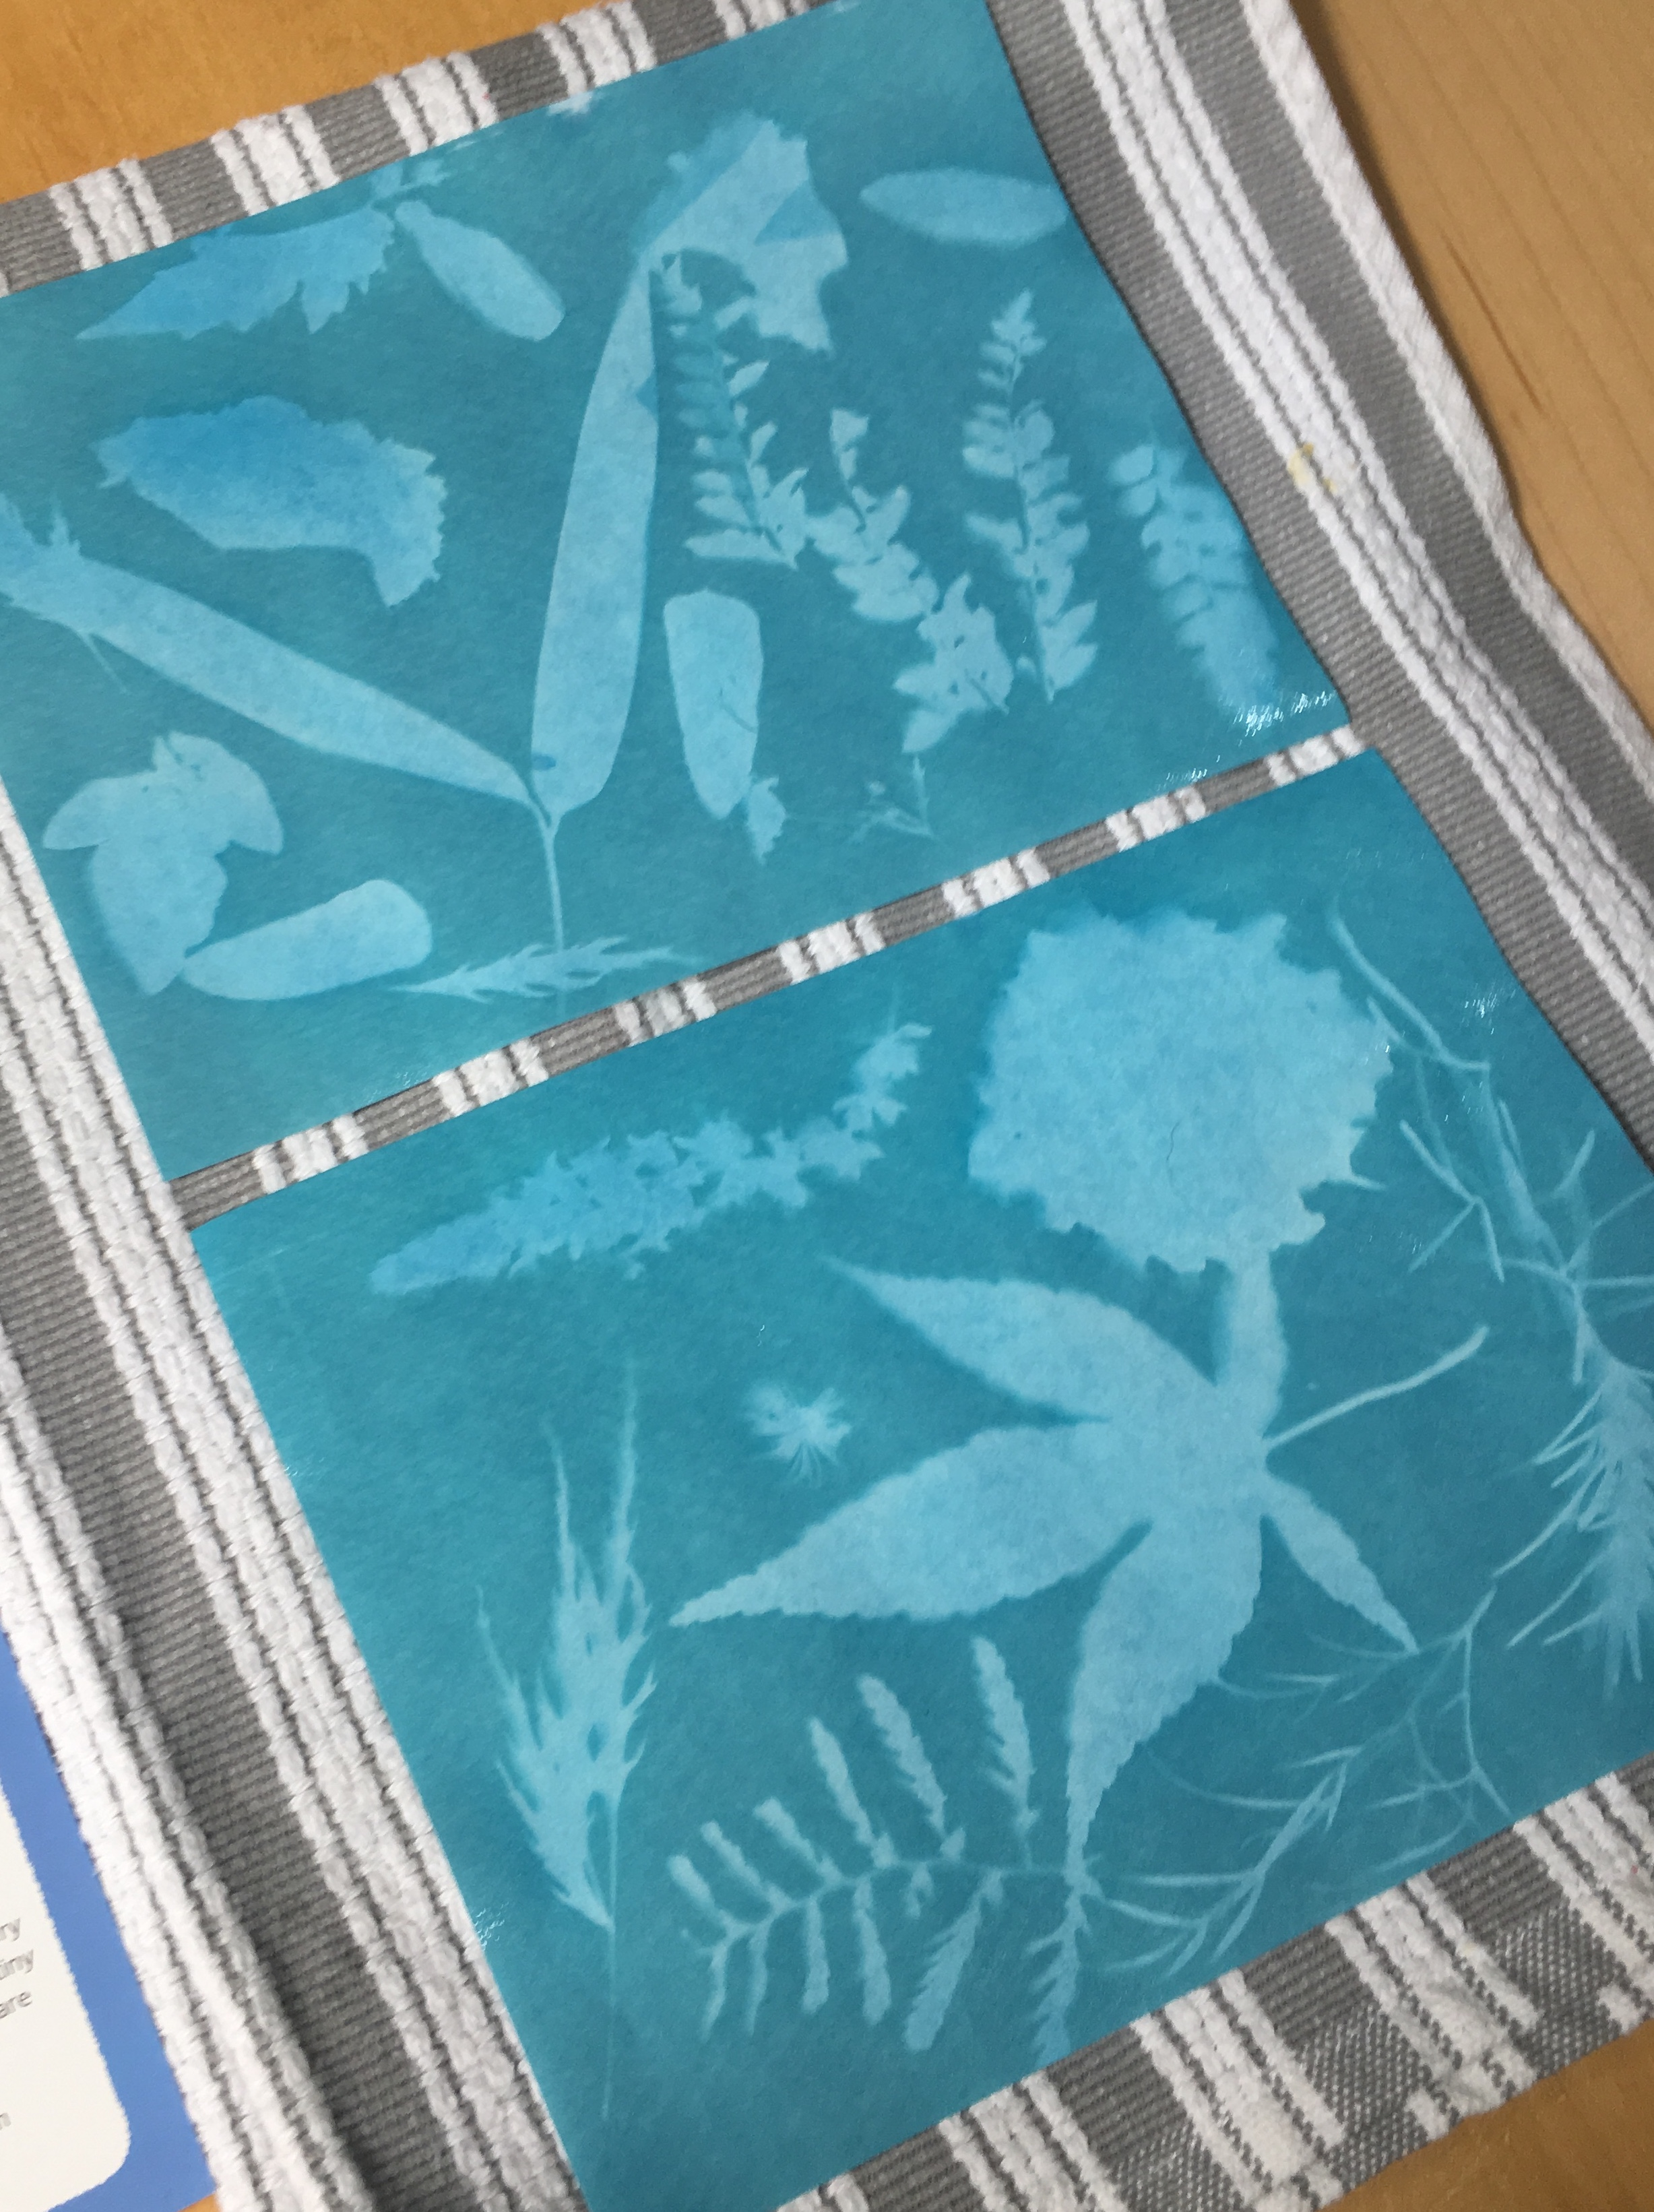 Making a nature sun print: Letting the image dry